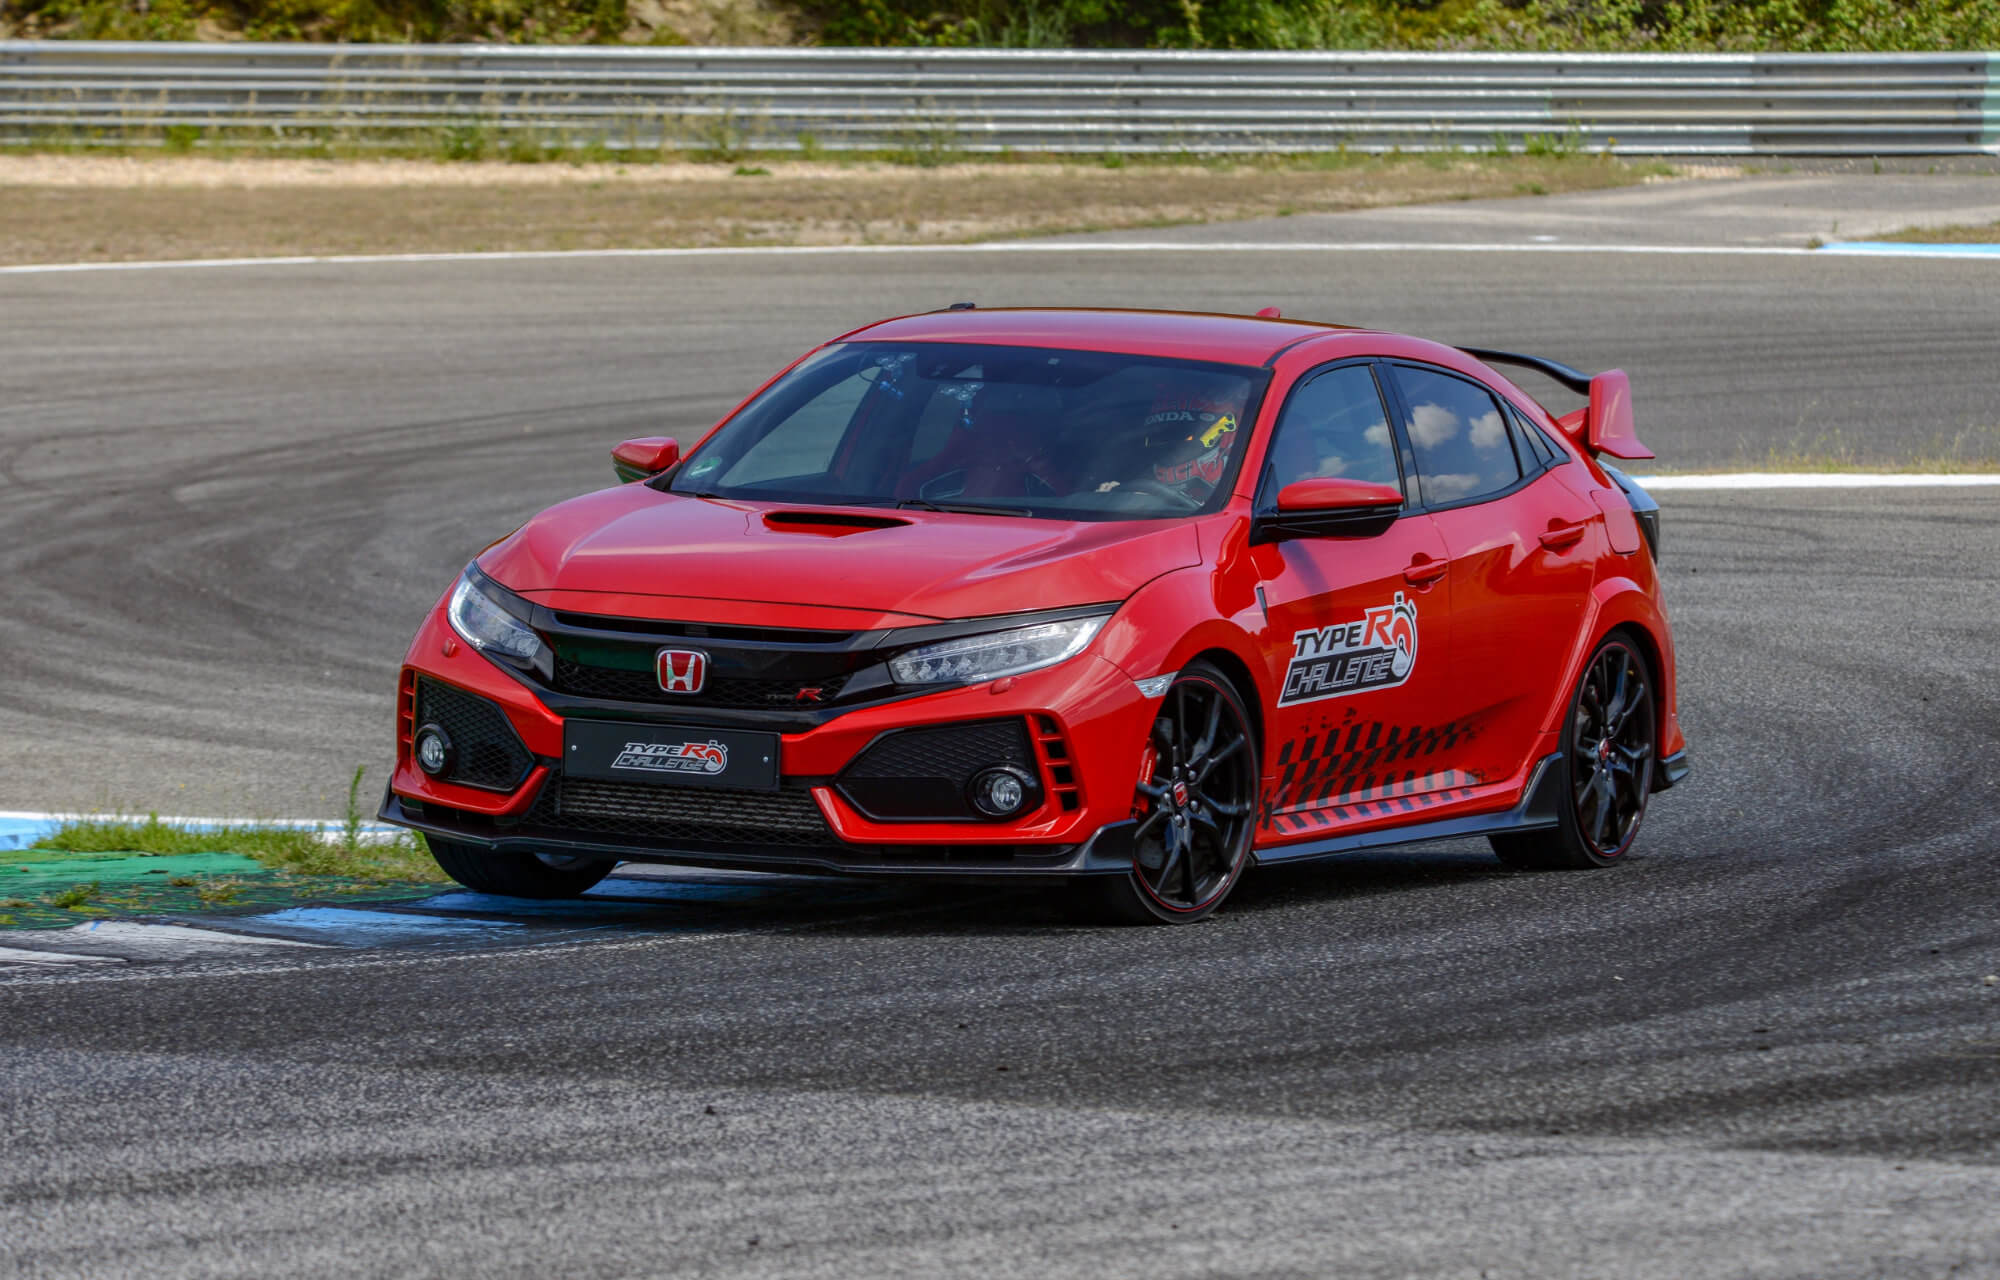 Honda Civic Type R sets new lap record at Estoril Circuit in Portugal